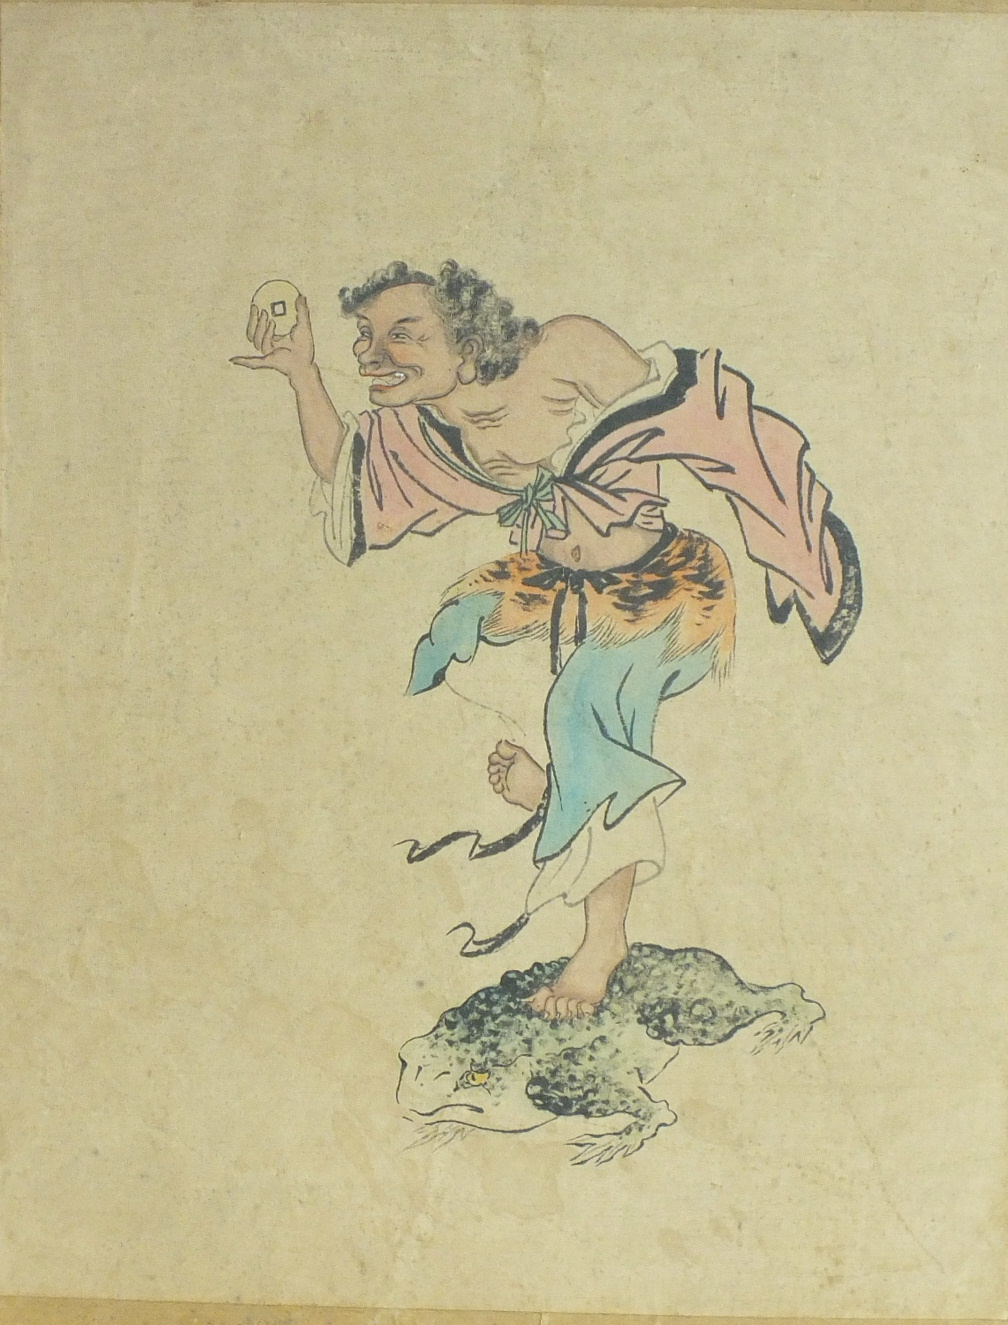 Lot 106 - An early-20th century Japanese unframed coloured print of a man holding a coin, standing on a